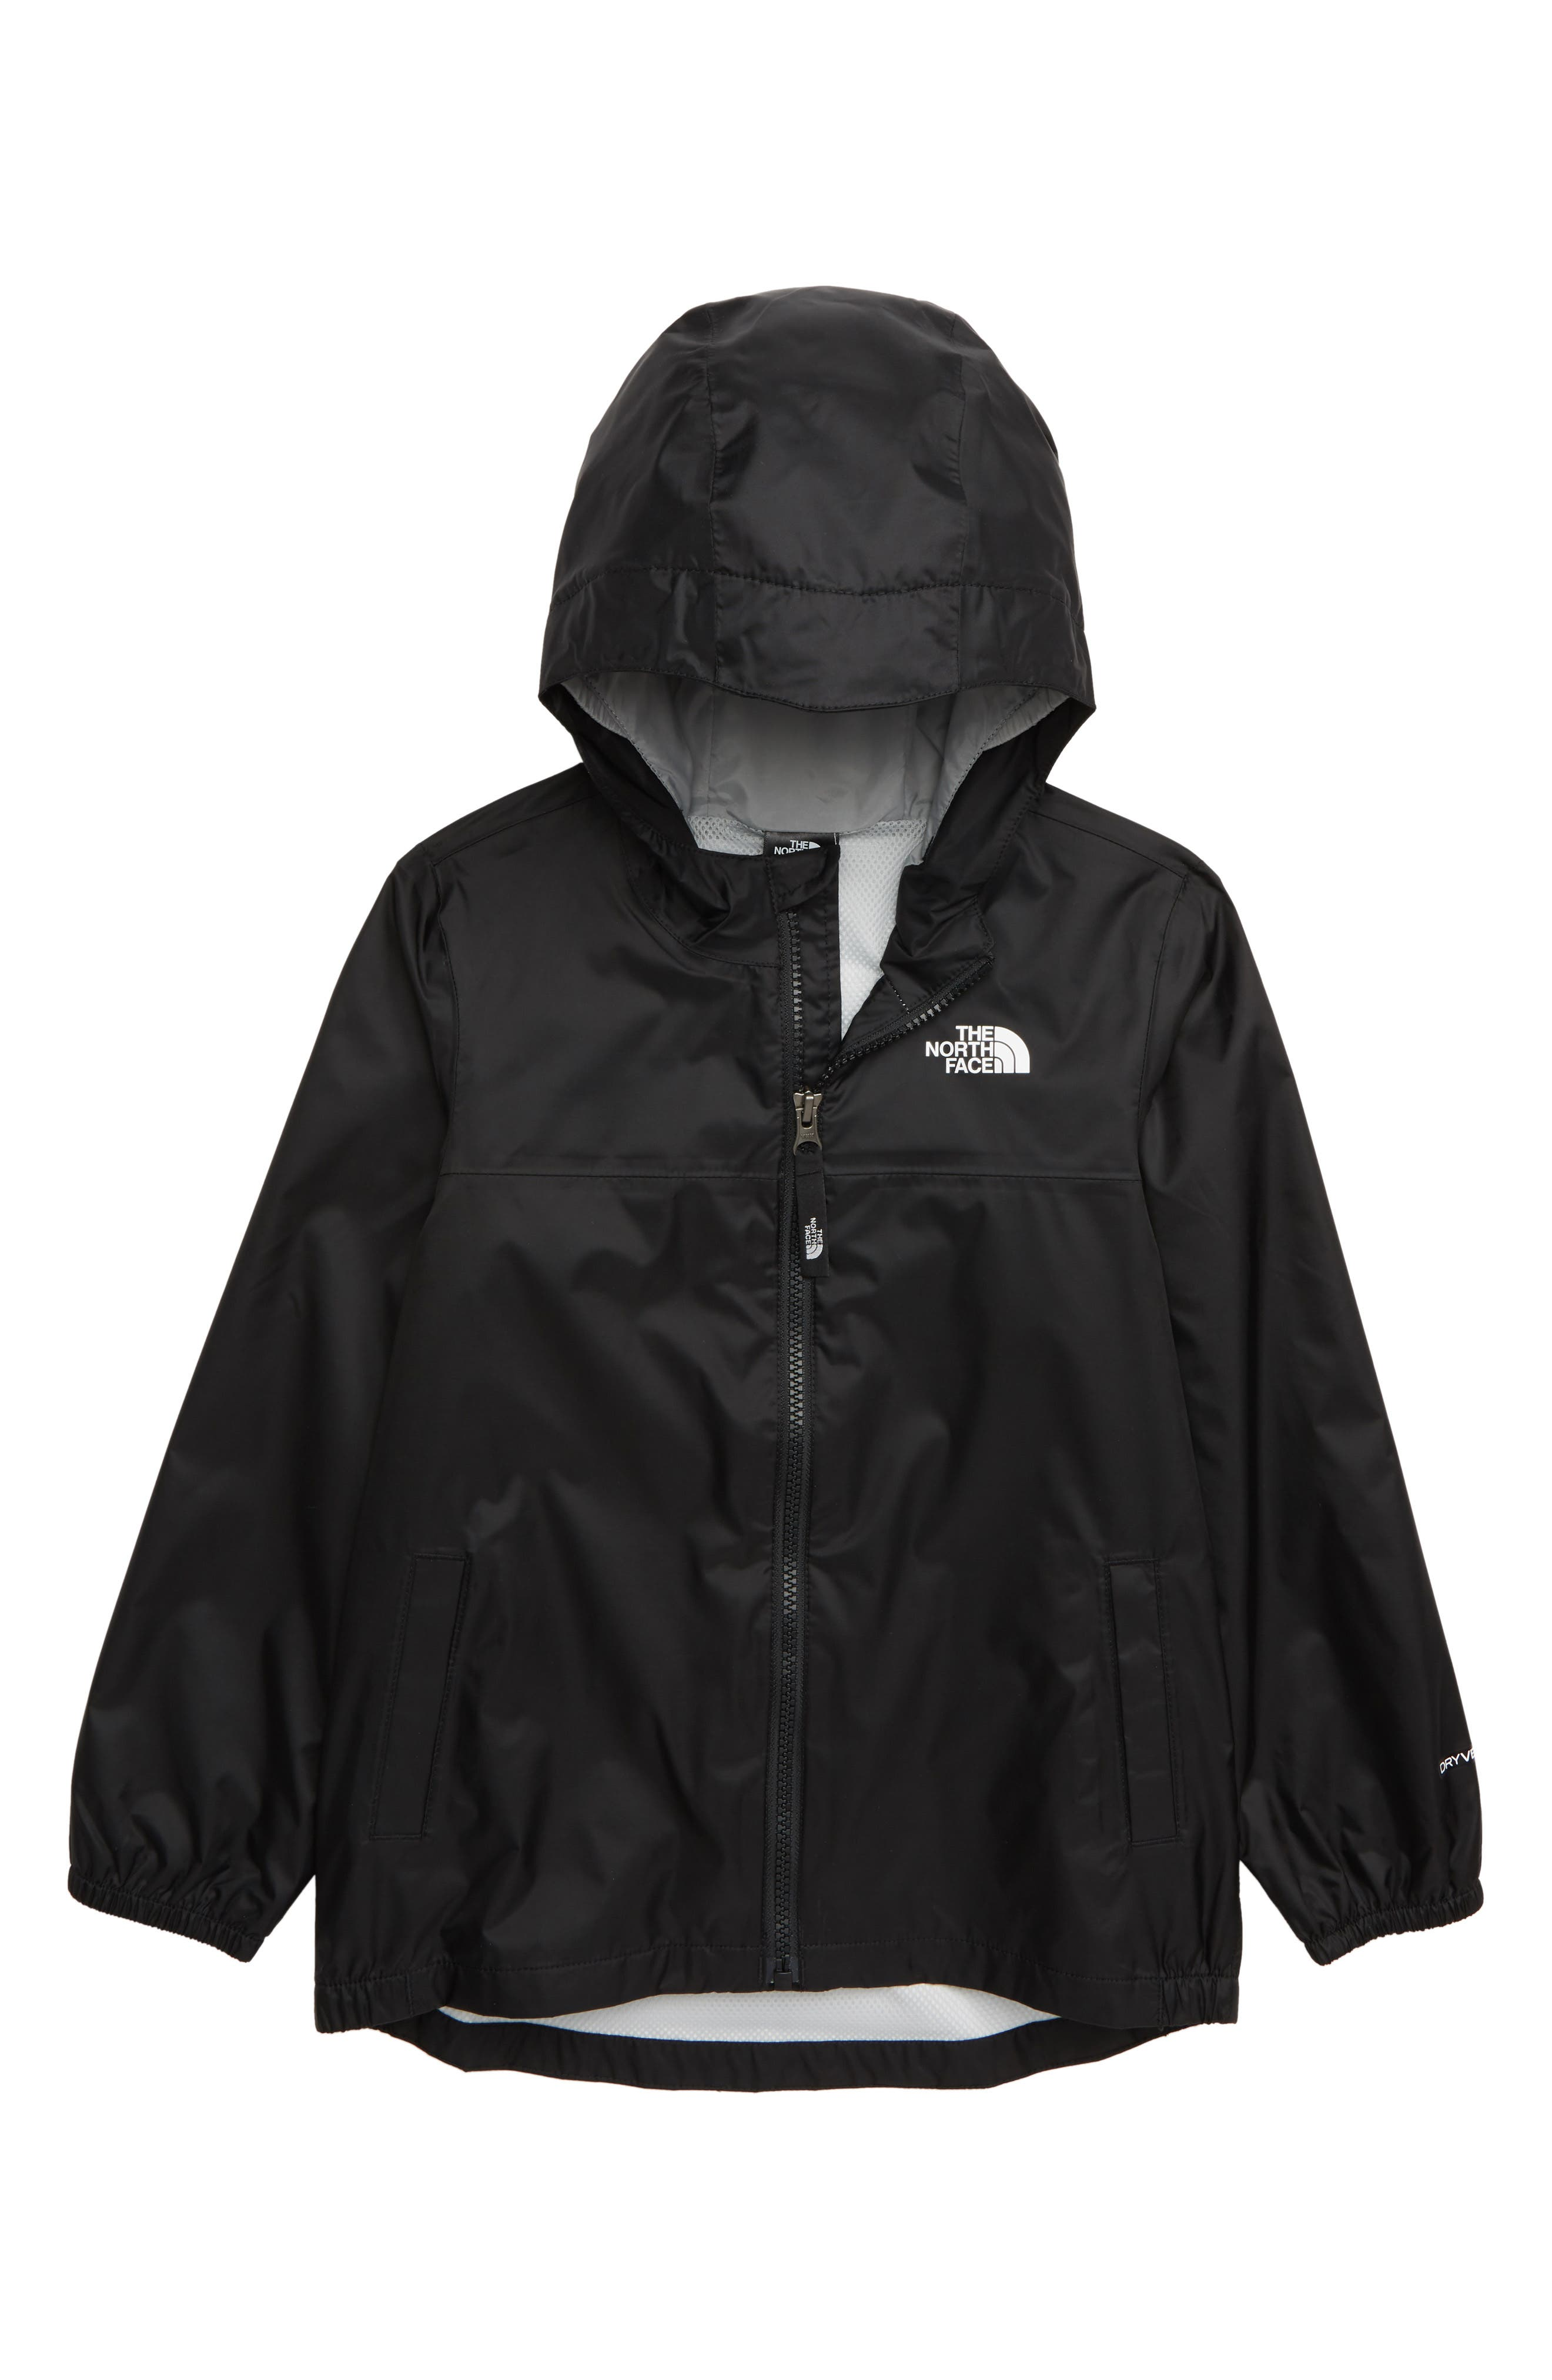 THE NORTH FACE Zipline Hooded Rain Jacket, Main, color, TNF BLACK